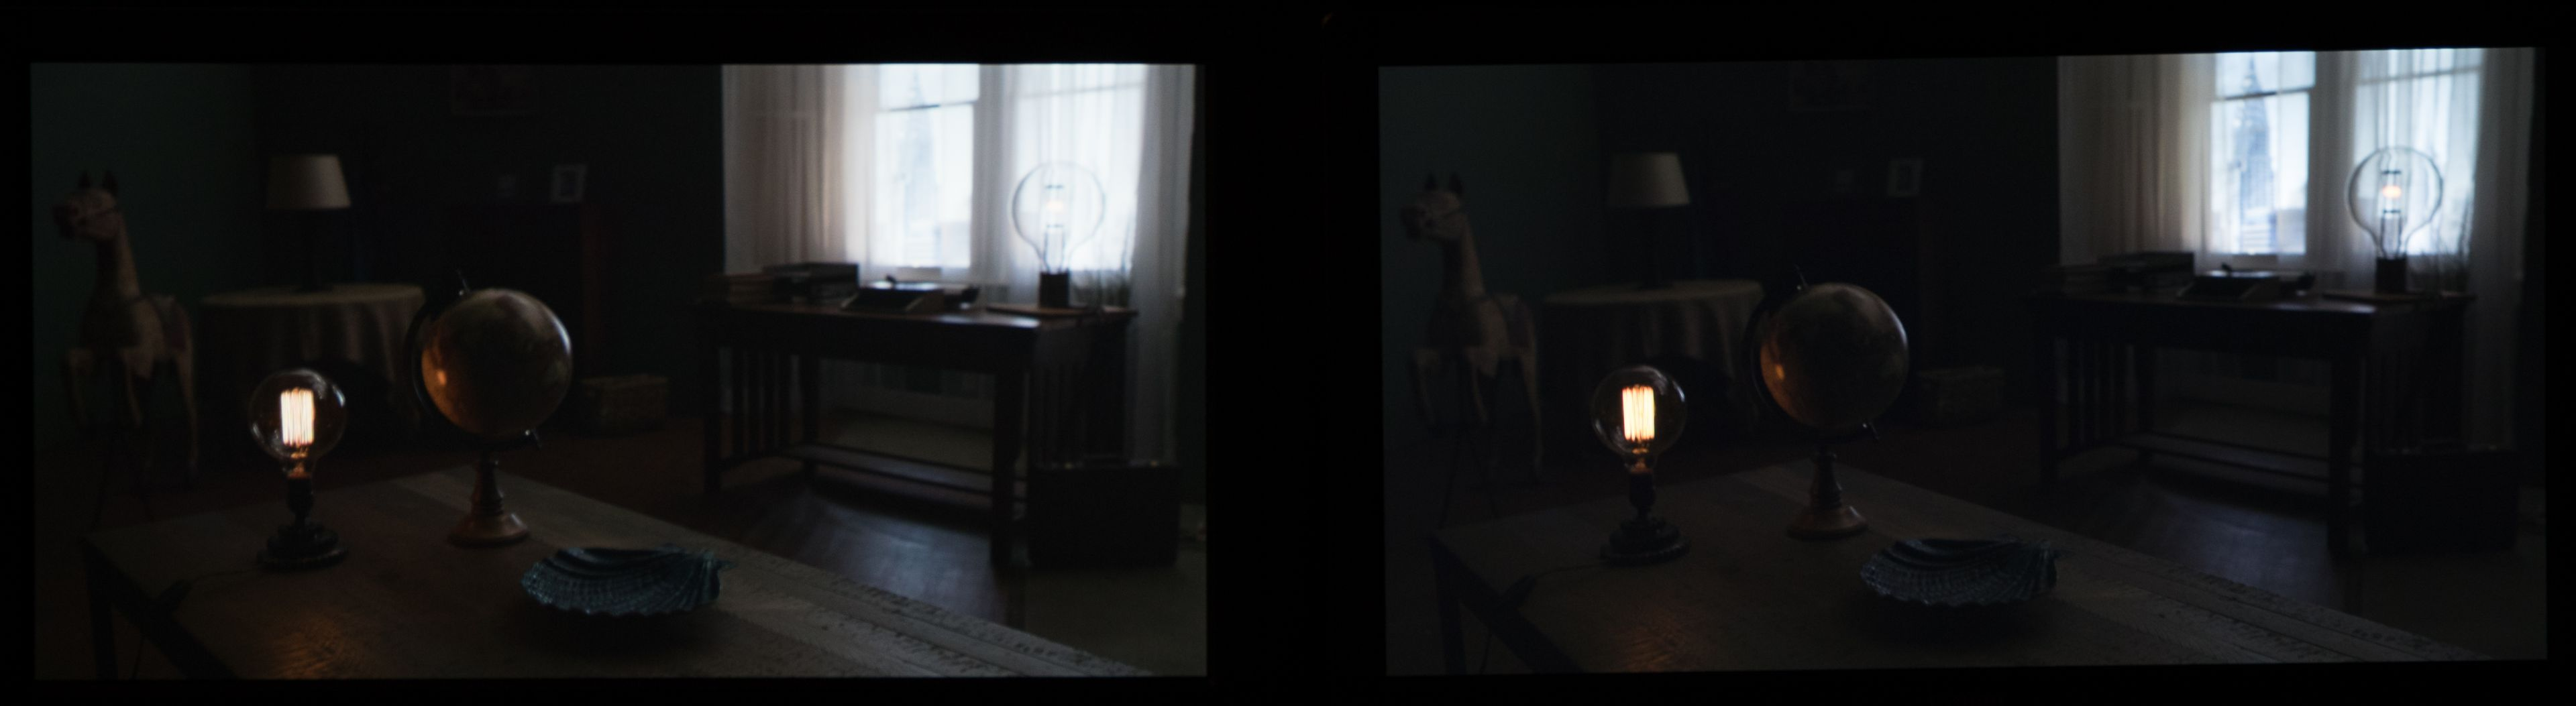 """A Guide to Shooting HDR TV: Day 2, """"On Set with HDR"""" 8"""